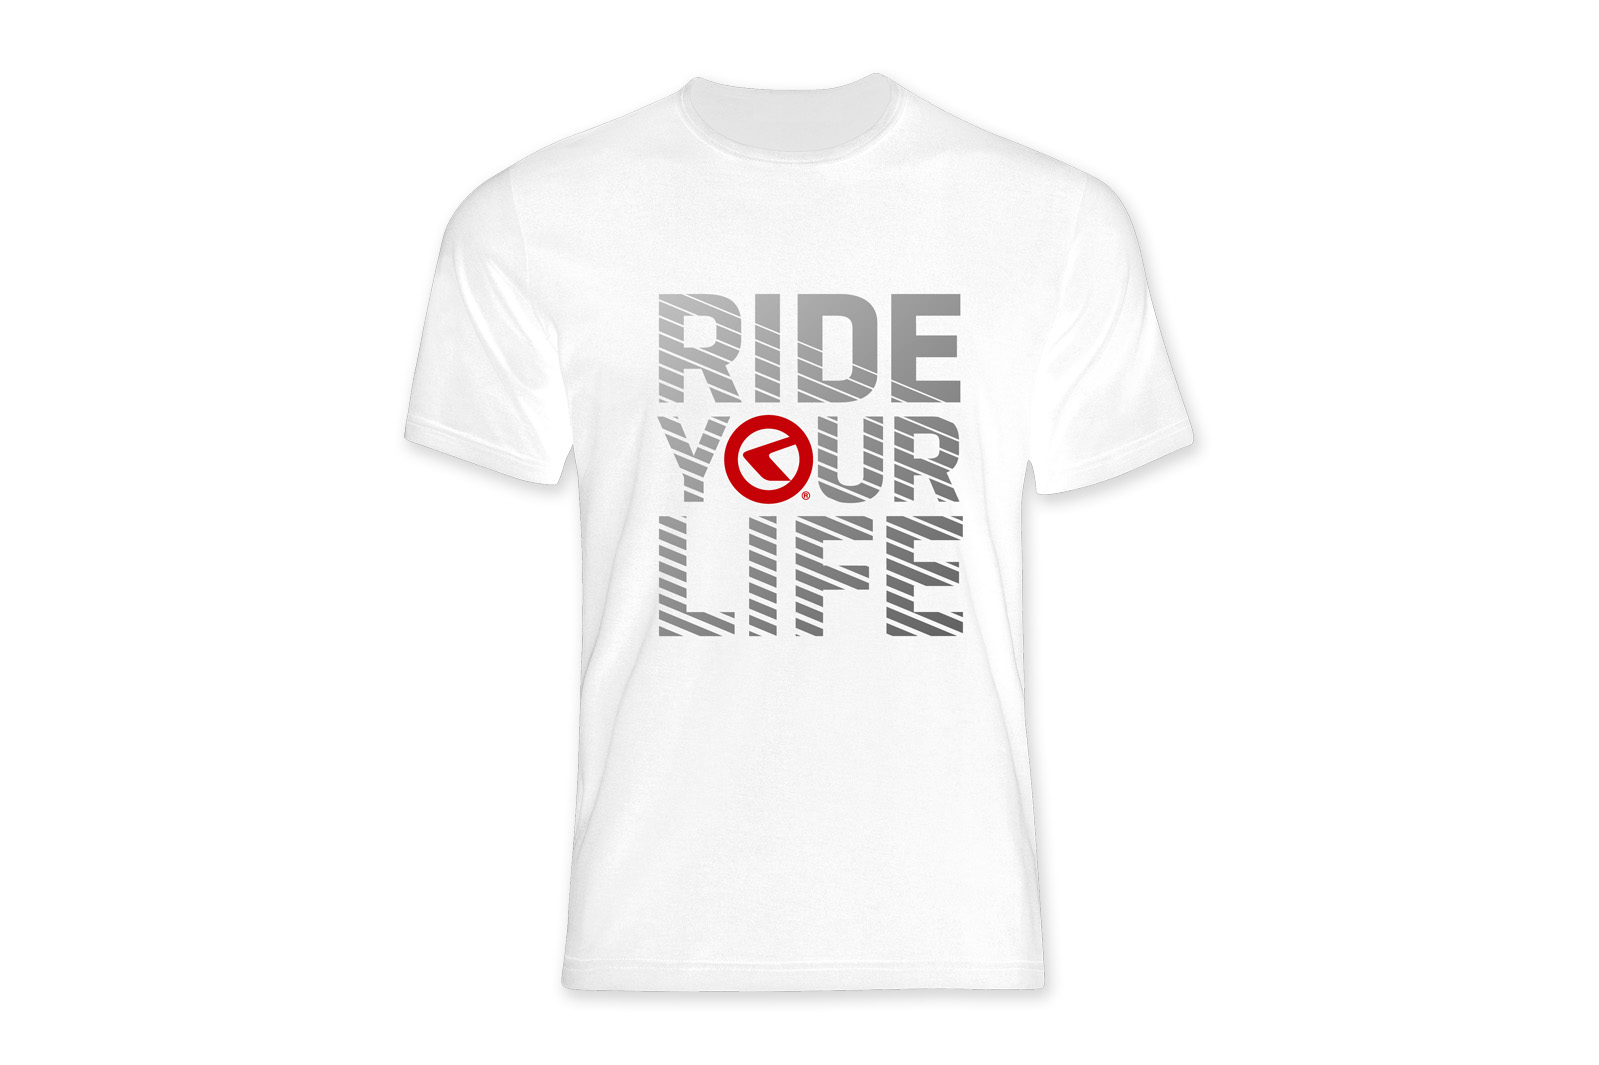 T-Shirt KELLYS RIDE YOUR LIFE kurzarm white - XXL - Mega Handelsgesellschaft